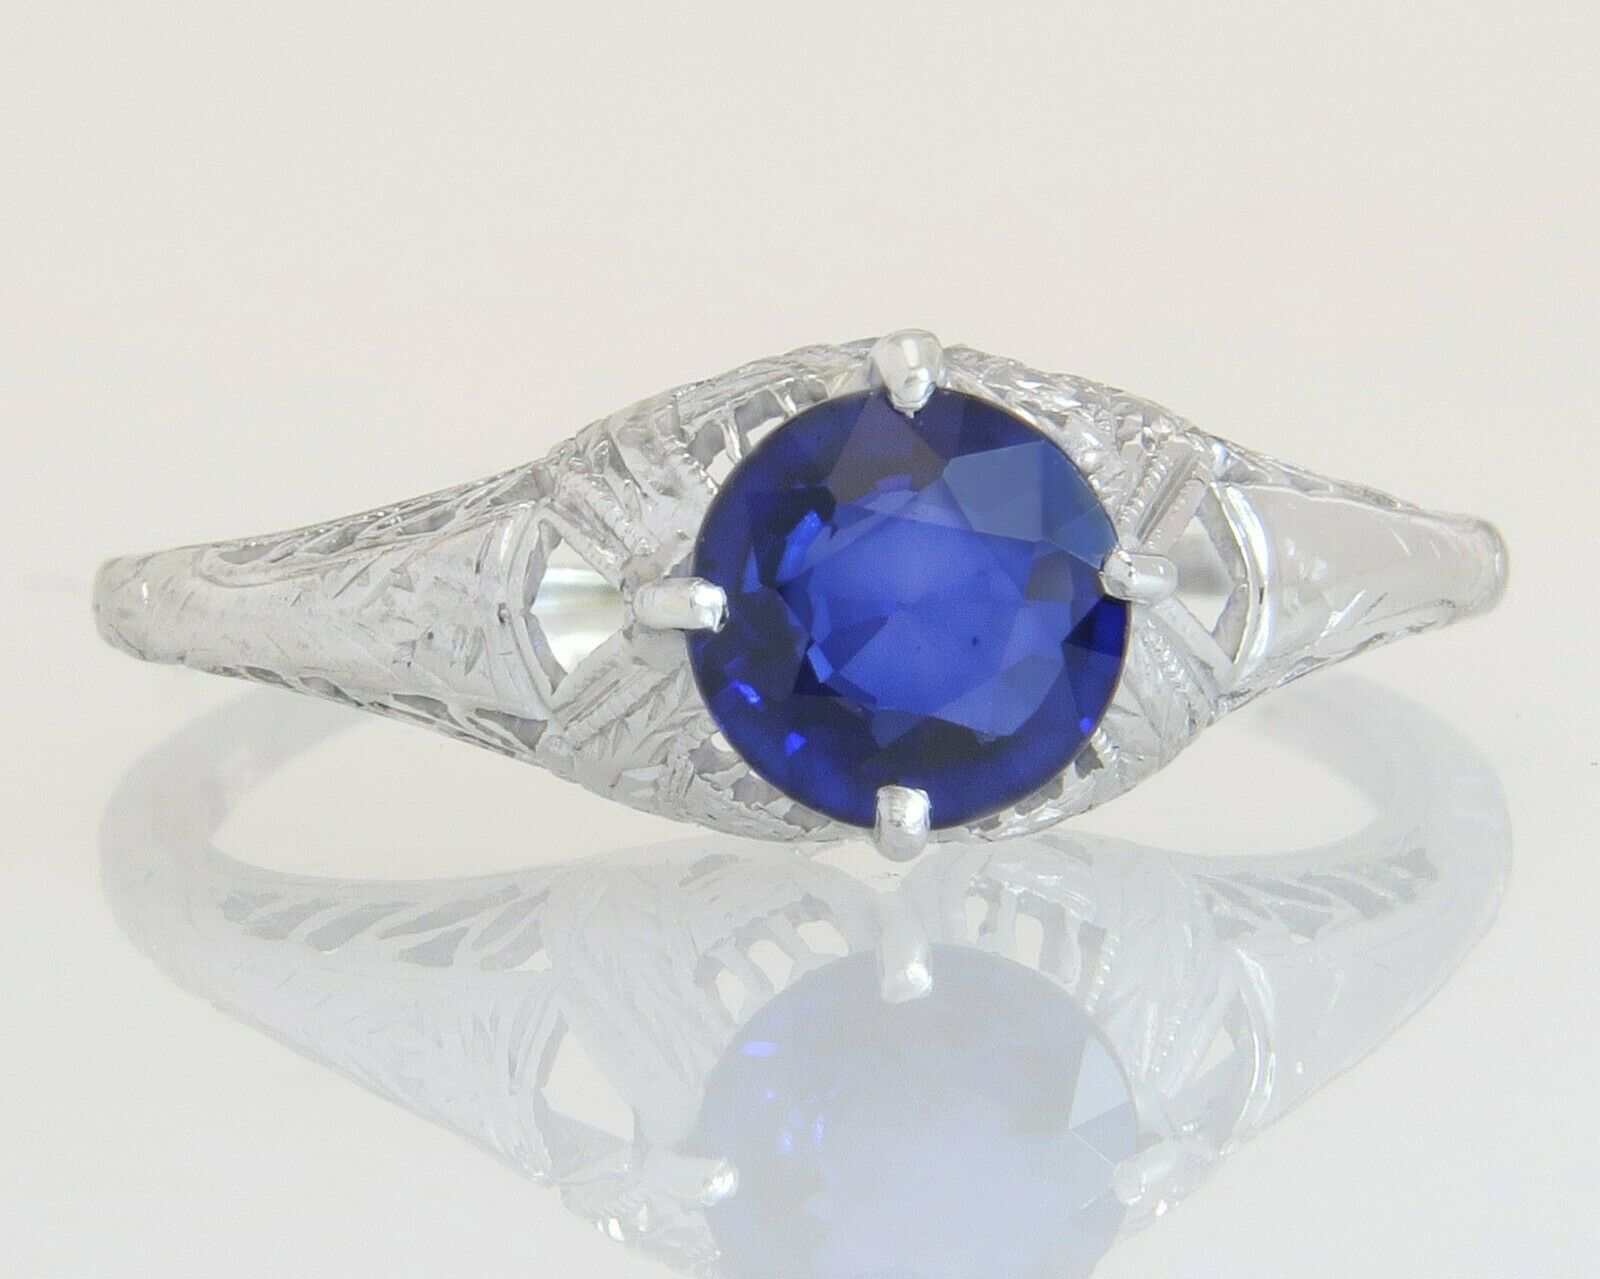 Antique Estate 18K gold .71ct Genuine bluee Sapphire Art Deco Engagement Ring 2g